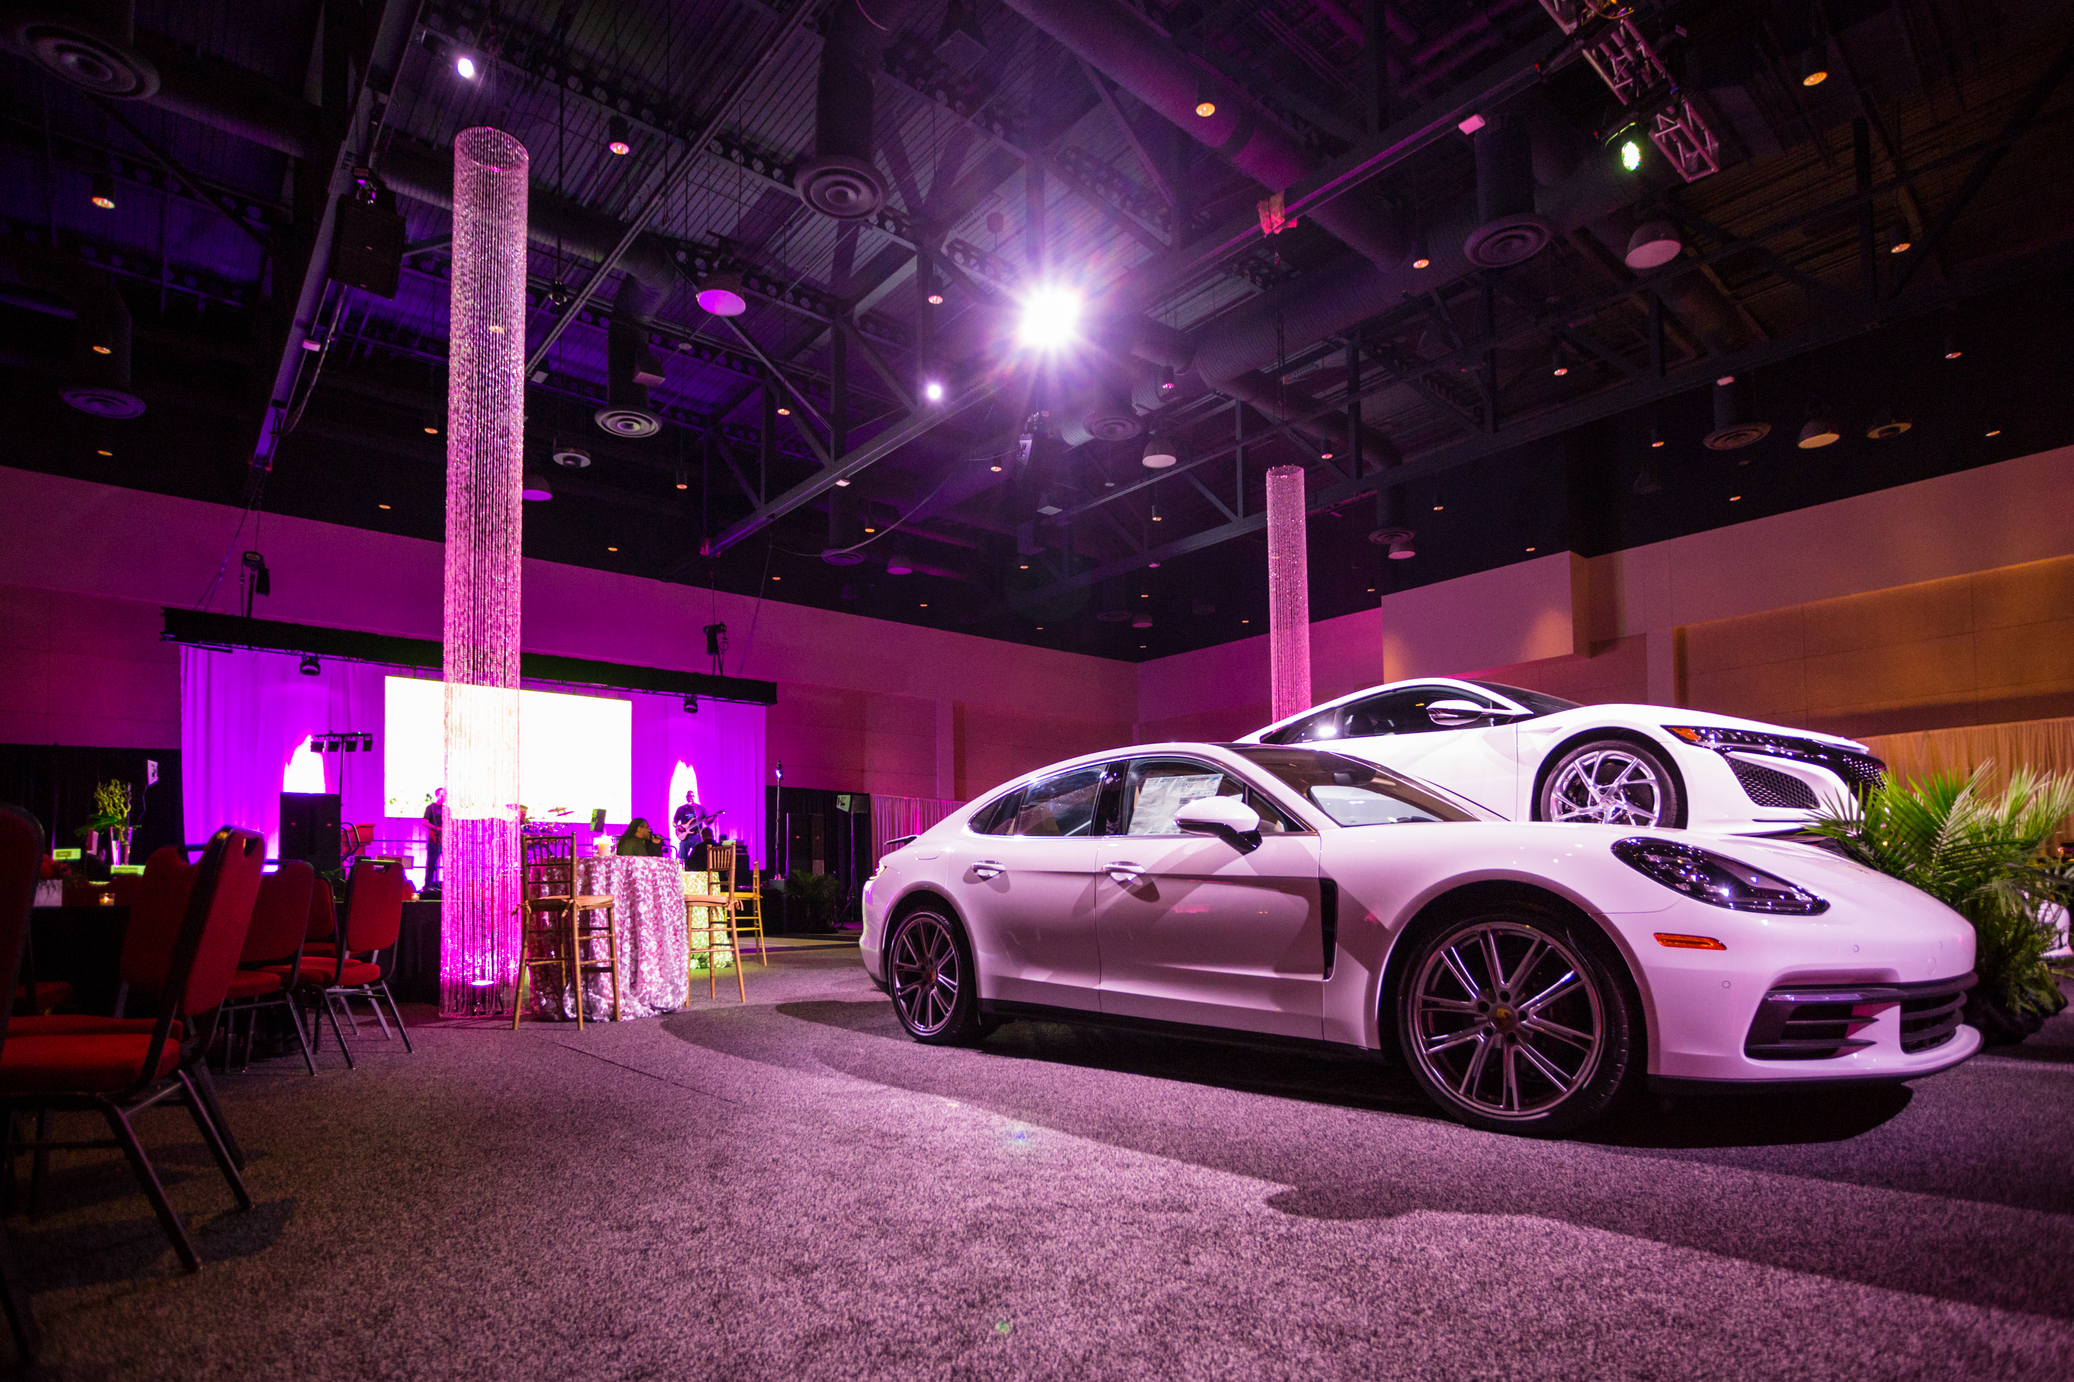 White cars on exhibit with visual equipment creating atmosphere.